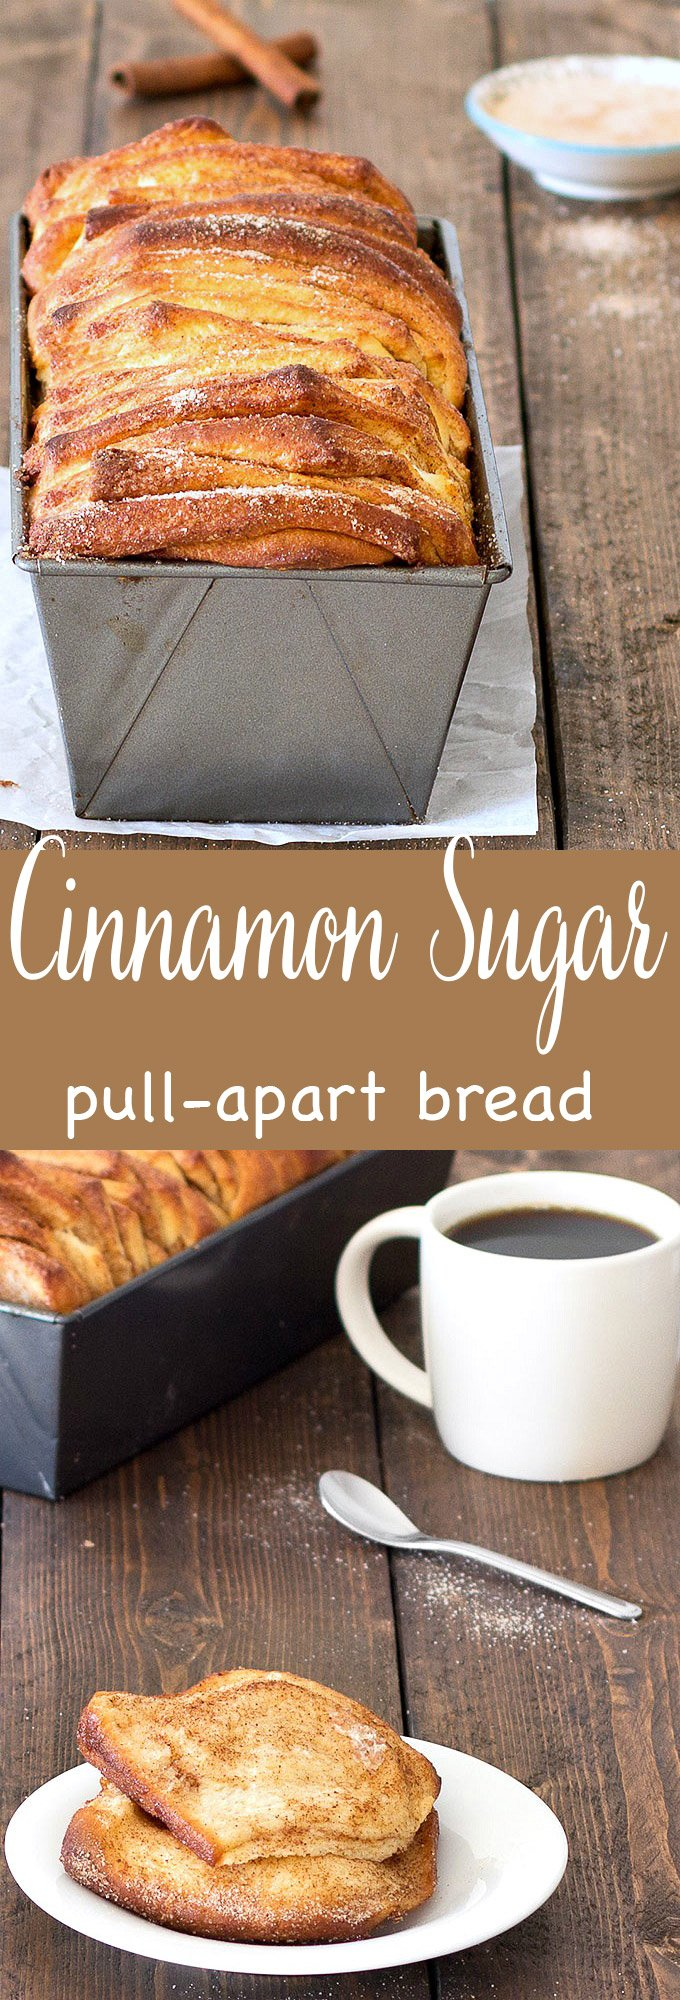 This easy cinnamon sugar pull-apart bread is soft and fluffy on the inside, golden-brown and crunchy on the outside. Perfect for breakfast or as a snack. #breakfast #brunch #cinnamon #baking #easyrecipe #pullapart #bread